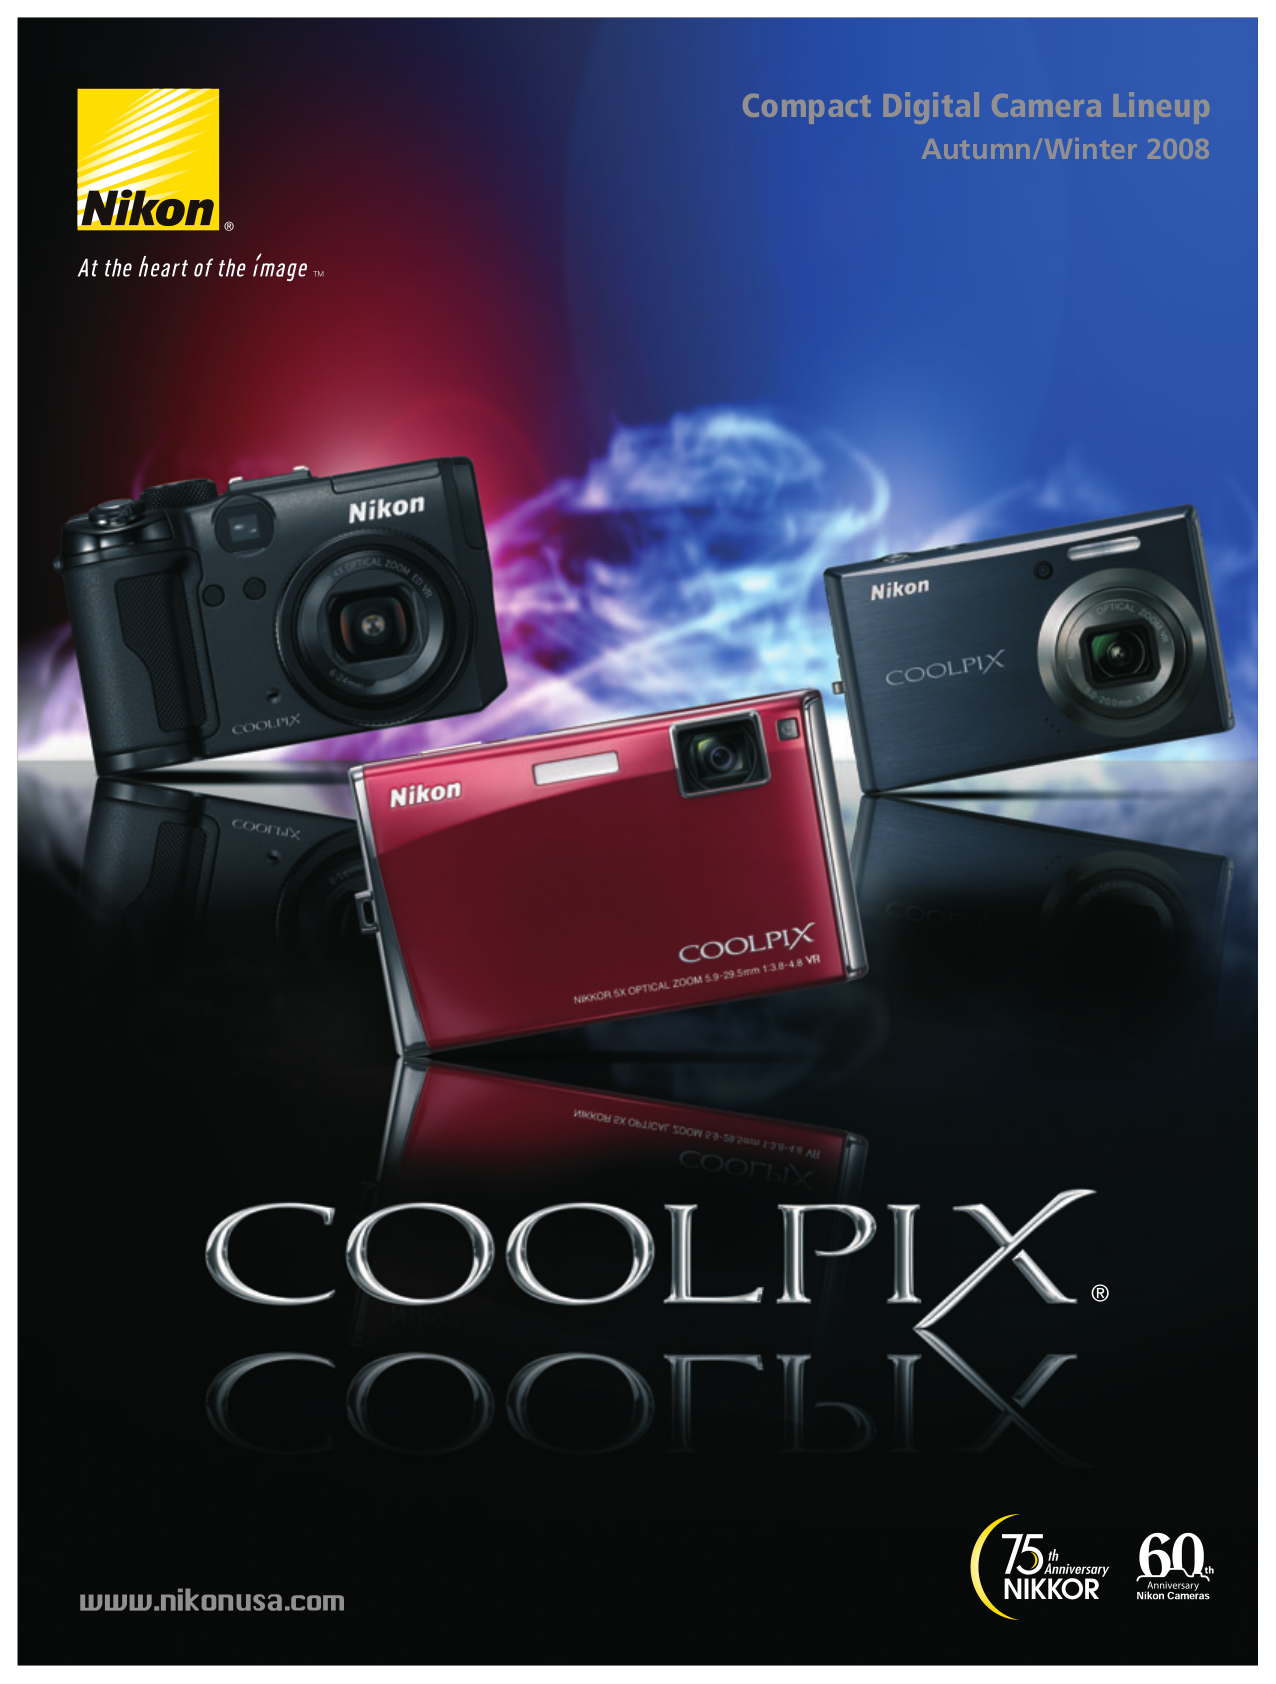 download free pdf for nikon coolpix p60 digital camera manual rh umlib com Nikon Camera User Manual nikon coolpix p600 manual download